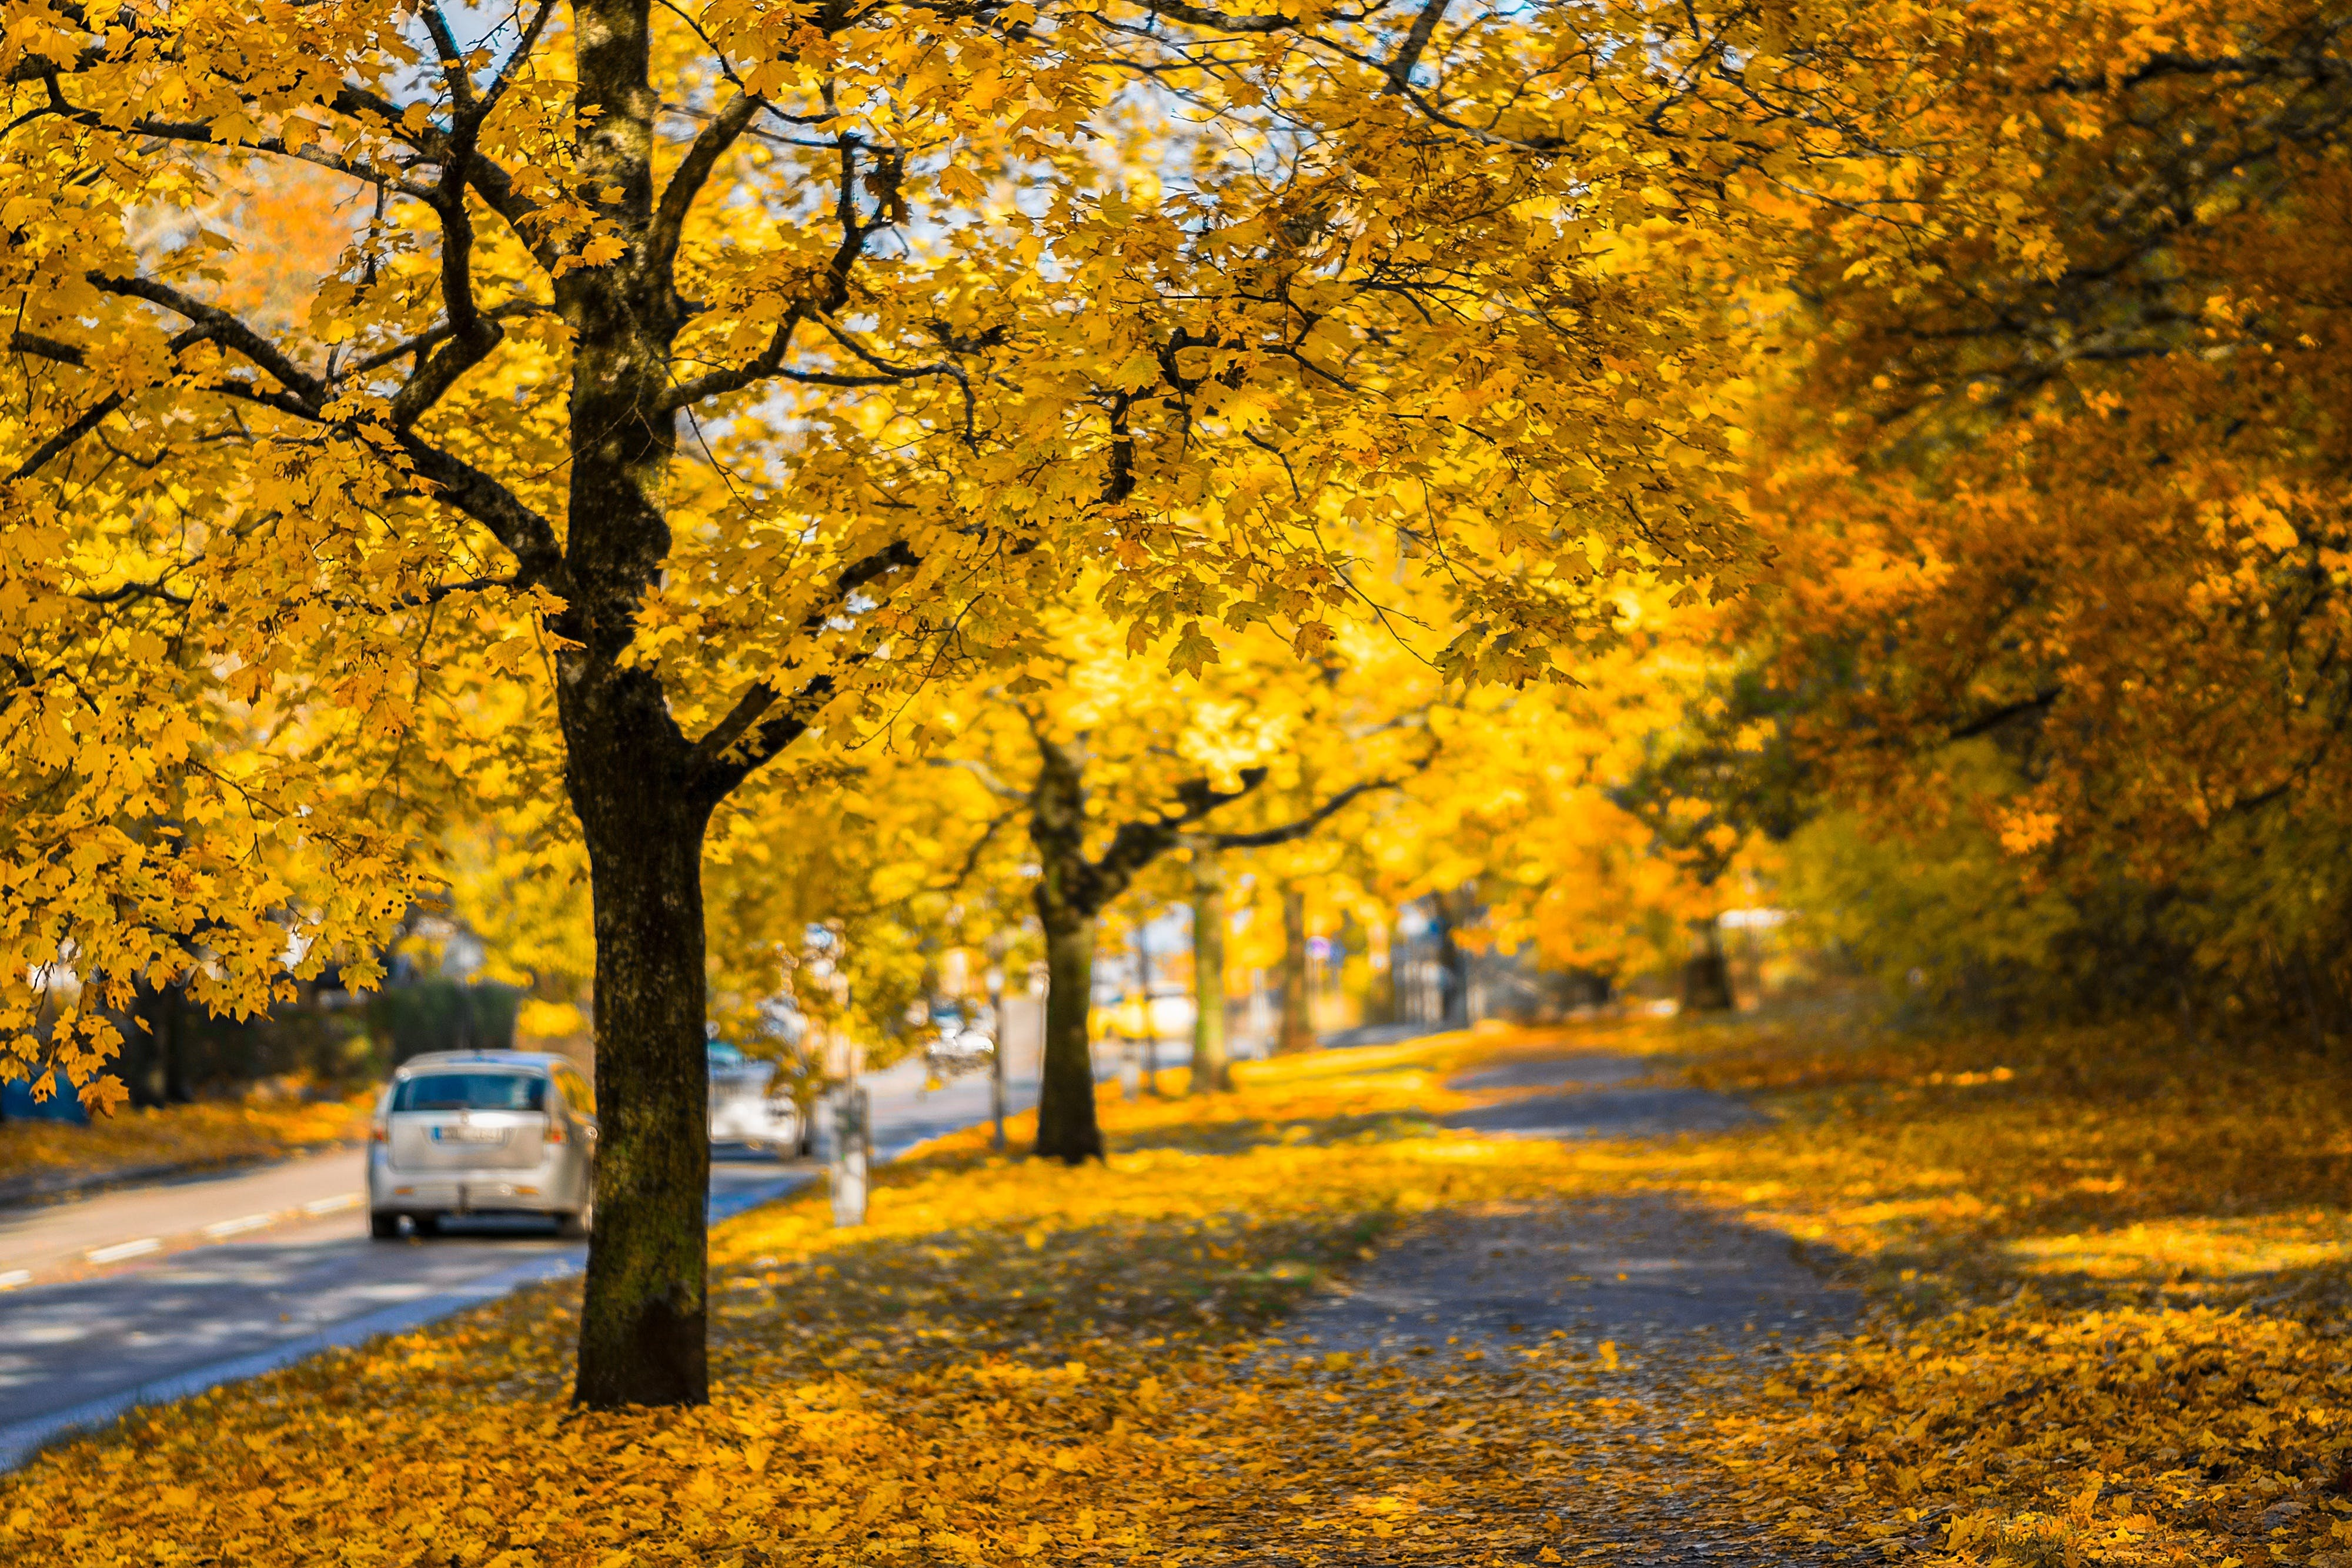 Yellow Leaf Tree Beside Roadway